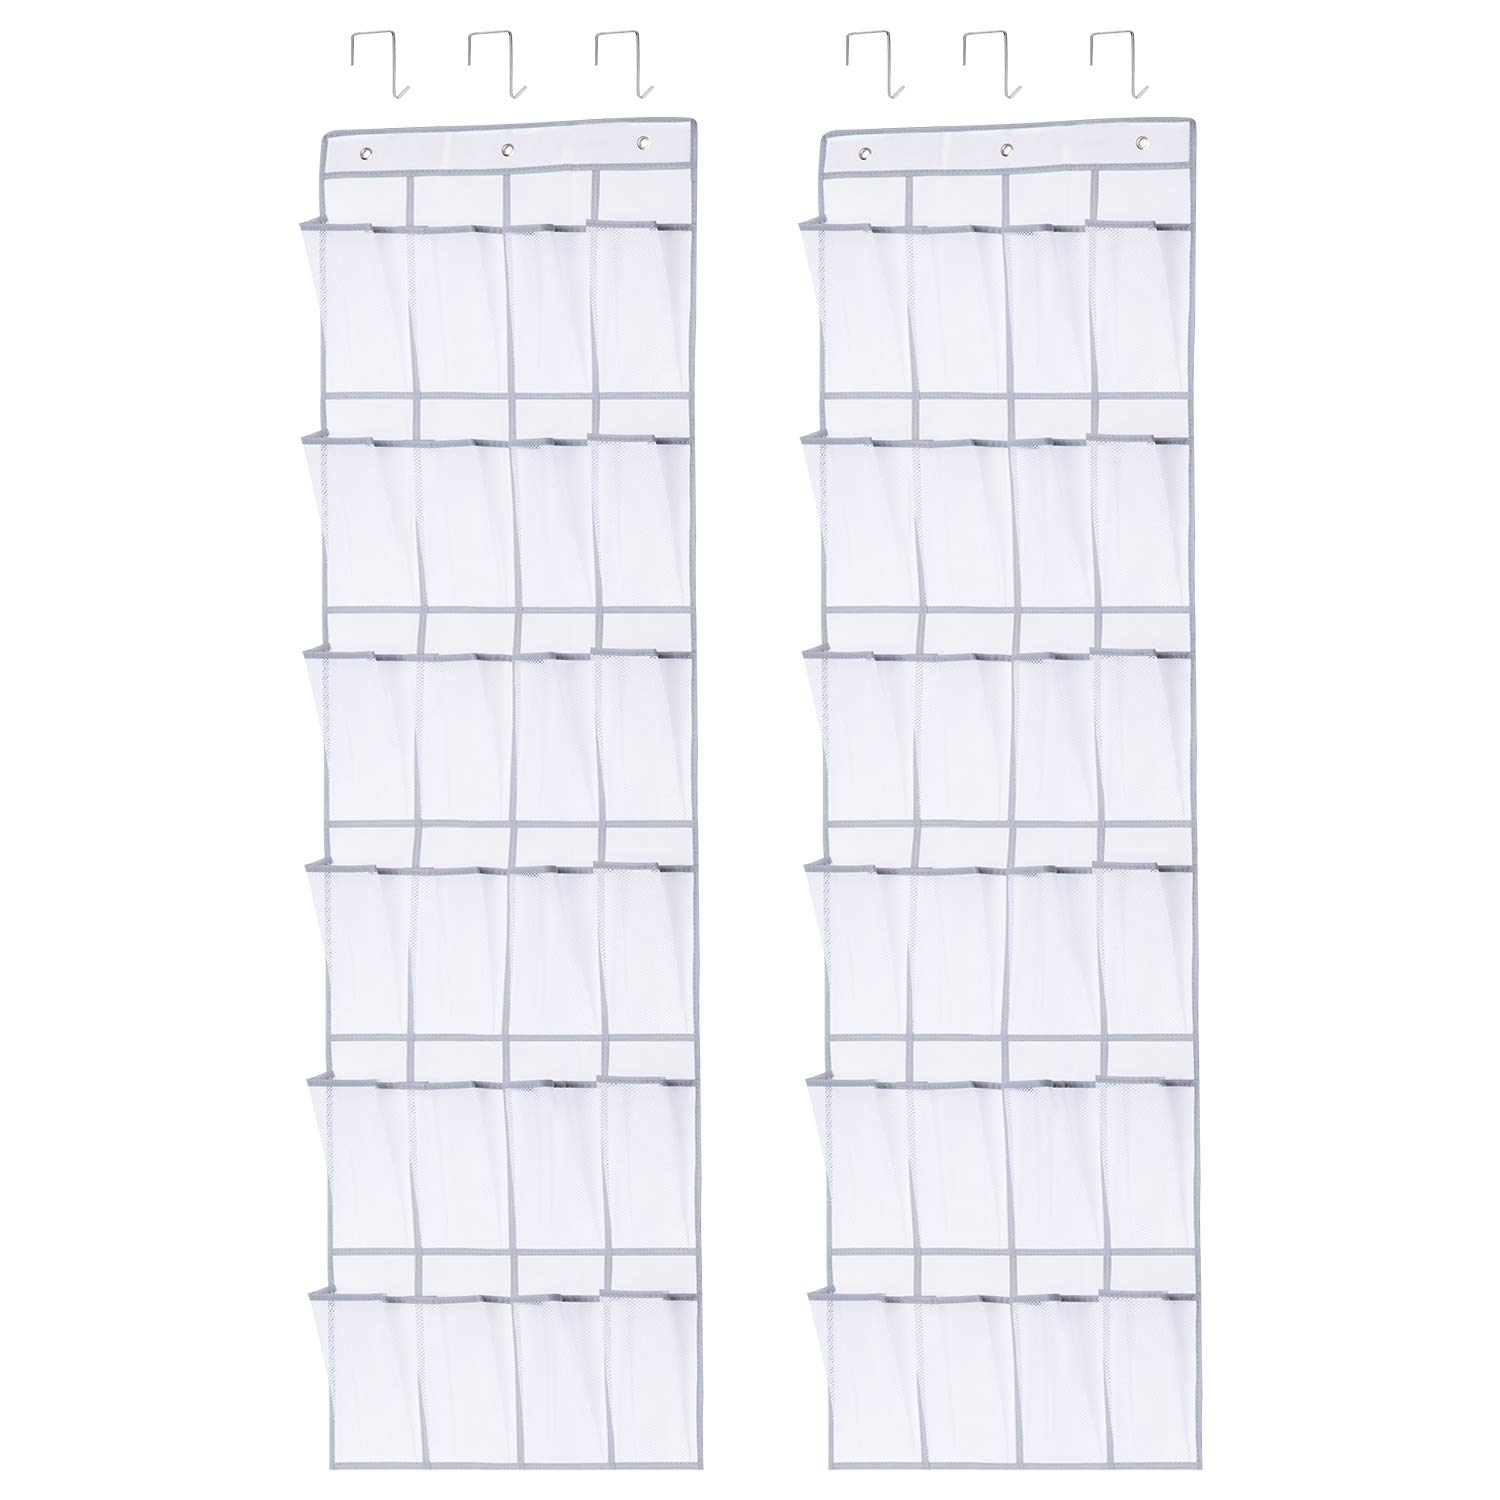 Gladget 2 Pack 24 Pockets Over The Door Shoes Organizer Shoe Holder Rack with Hanging Hooks for Bedroom Closet Dormitory Kitchen (Medium, White) by Gladget